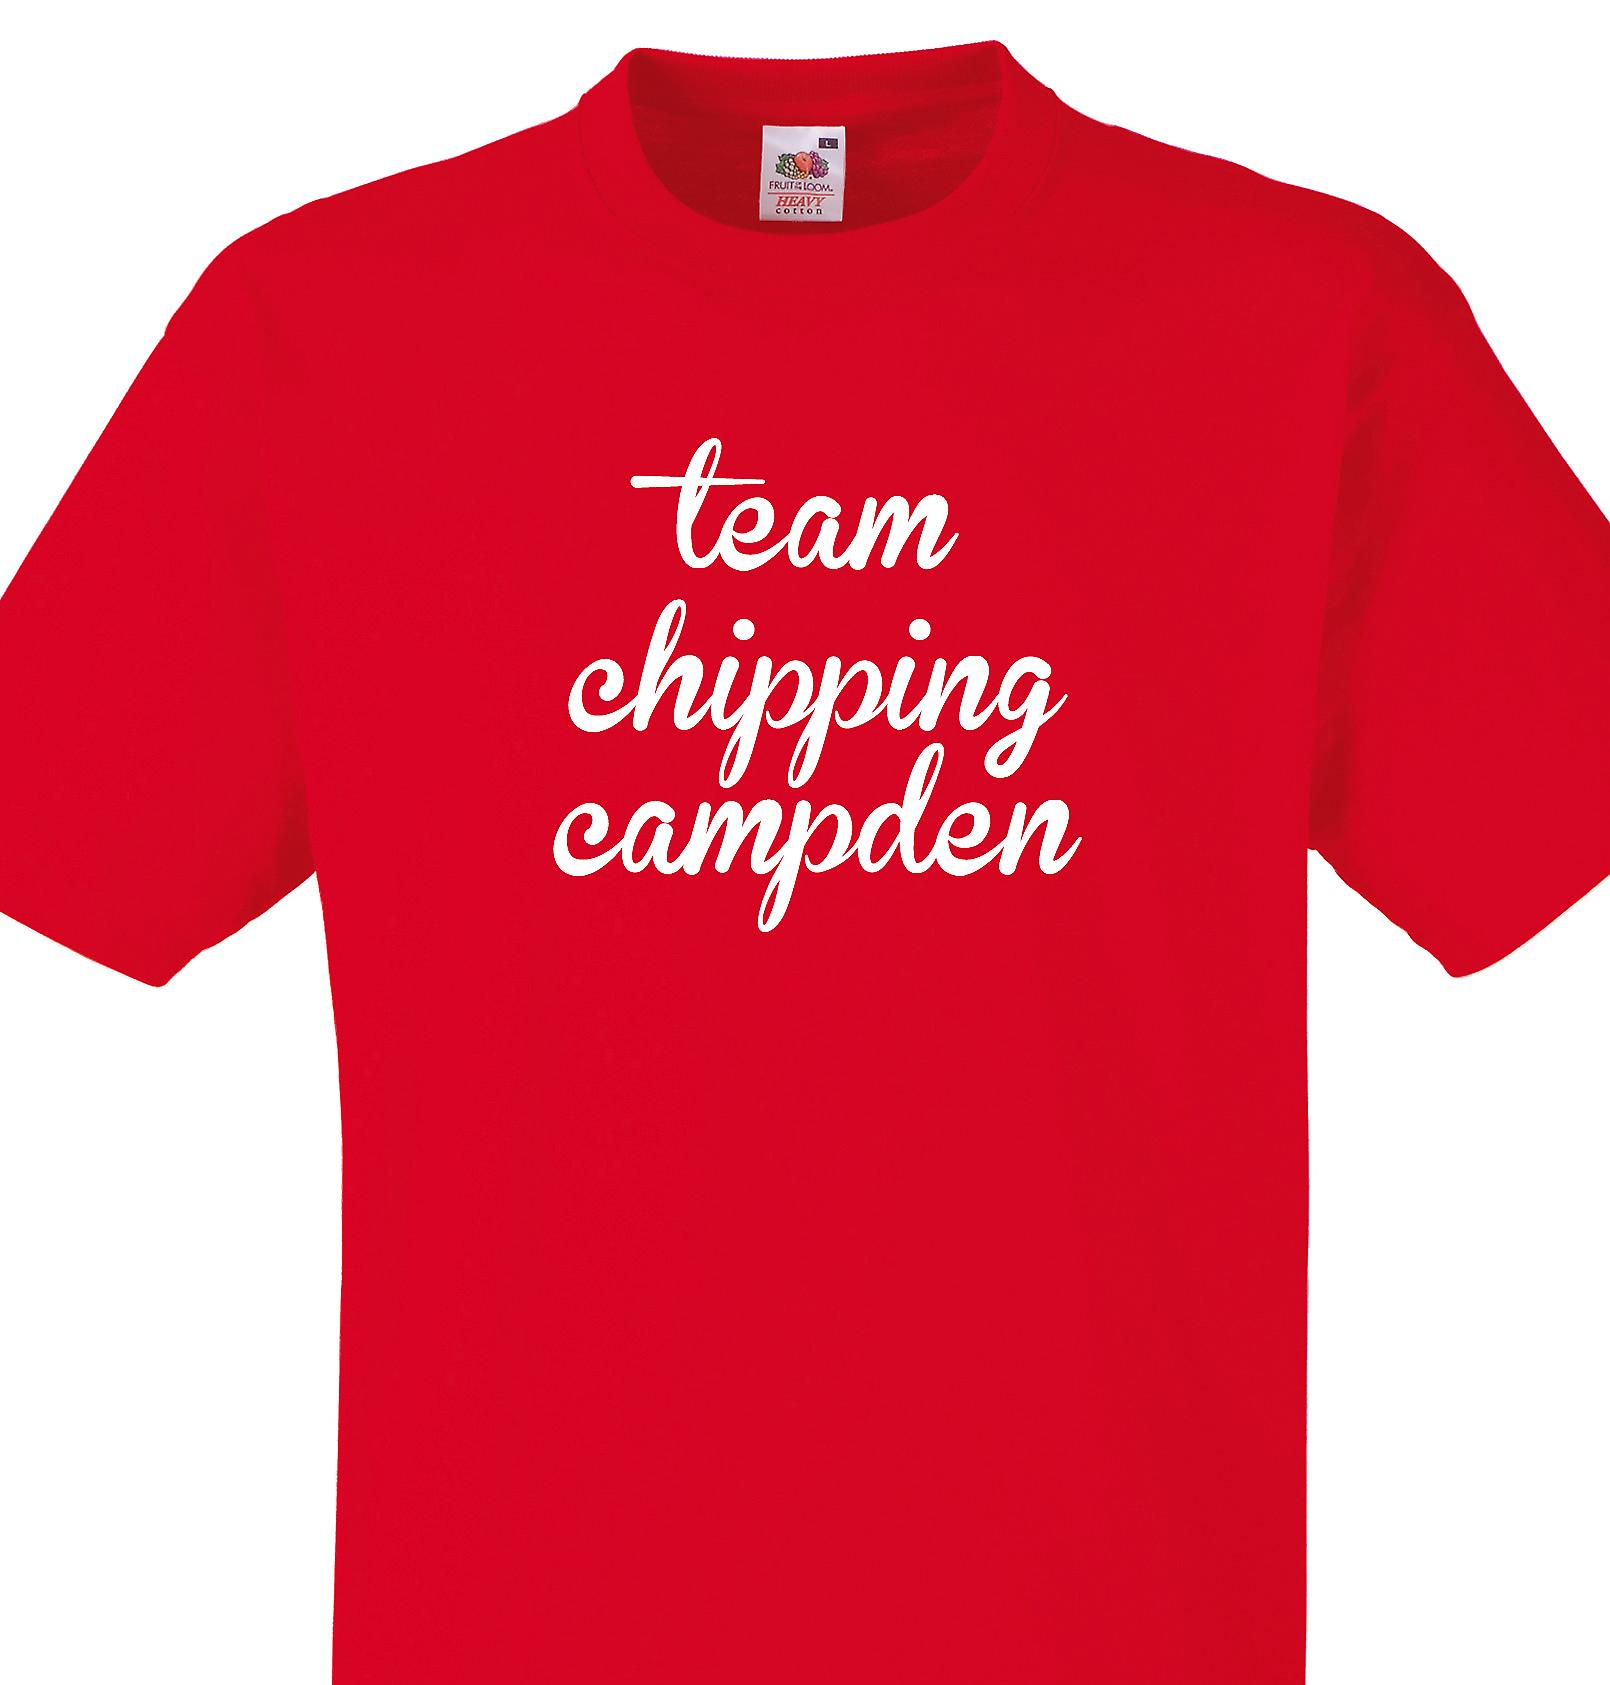 Team Chipping campden Red T shirt